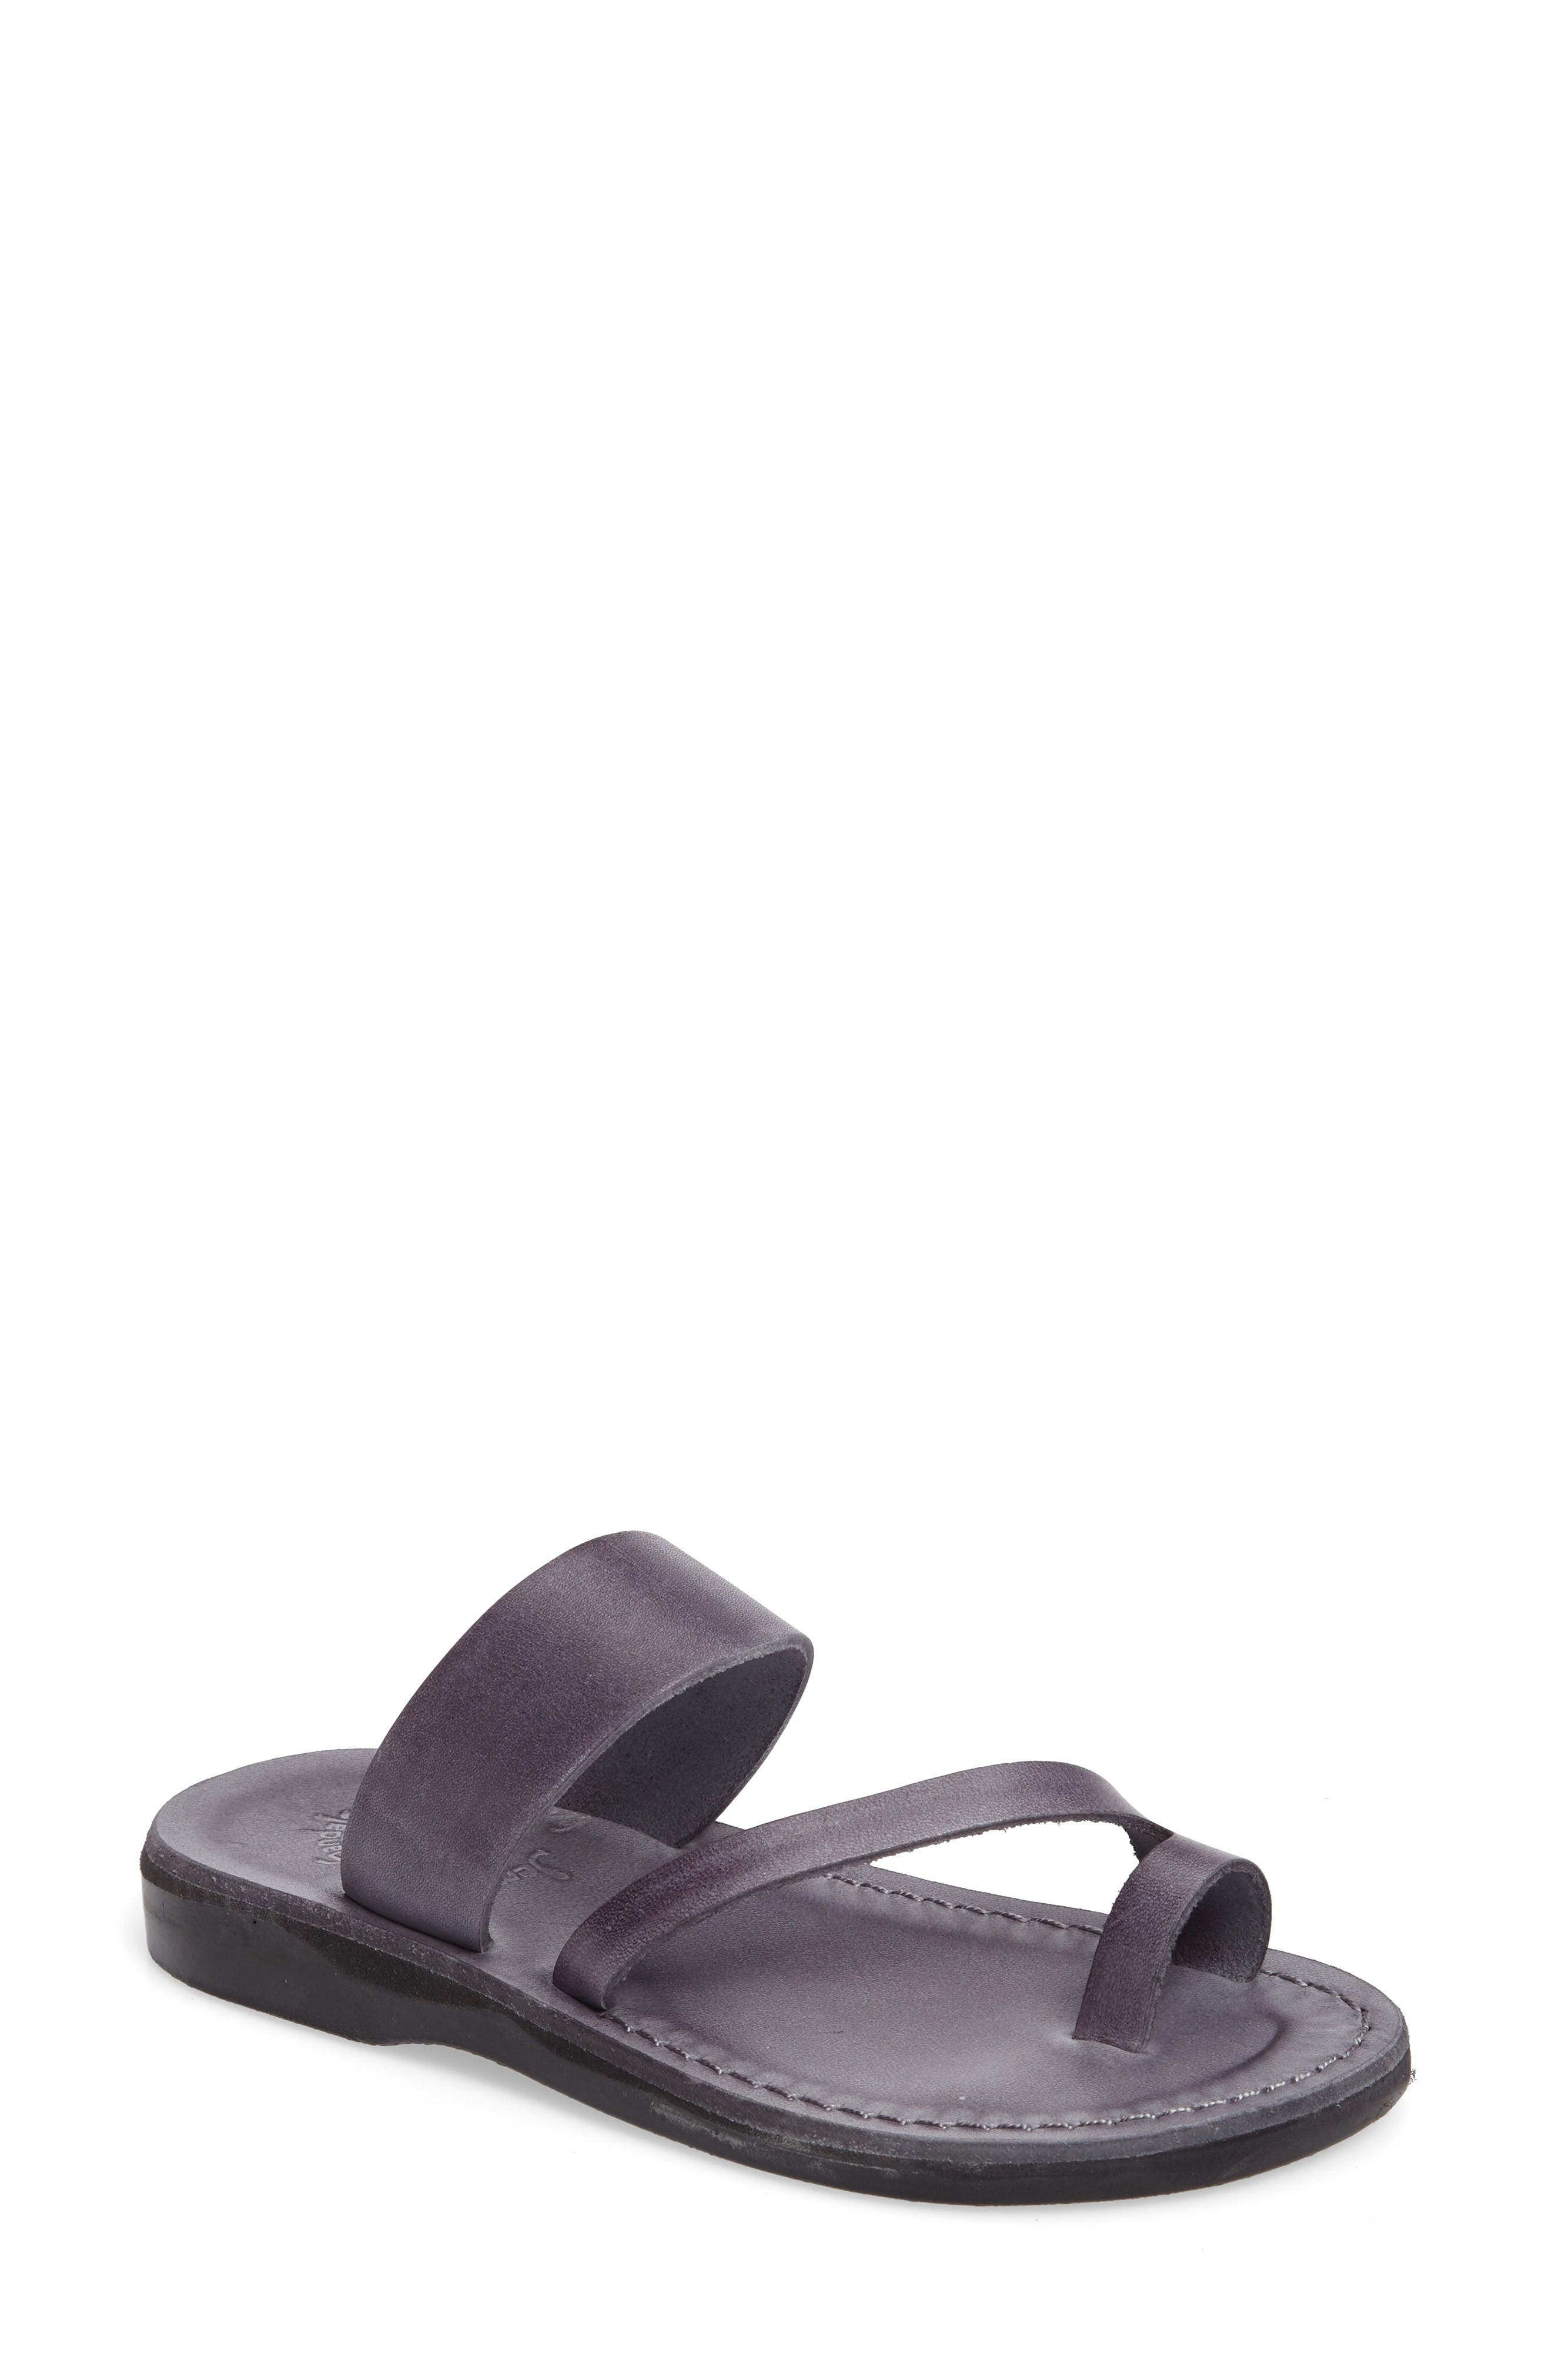 'Zohar' Leather Sandal,                             Main thumbnail 1, color,                             Grey Leather